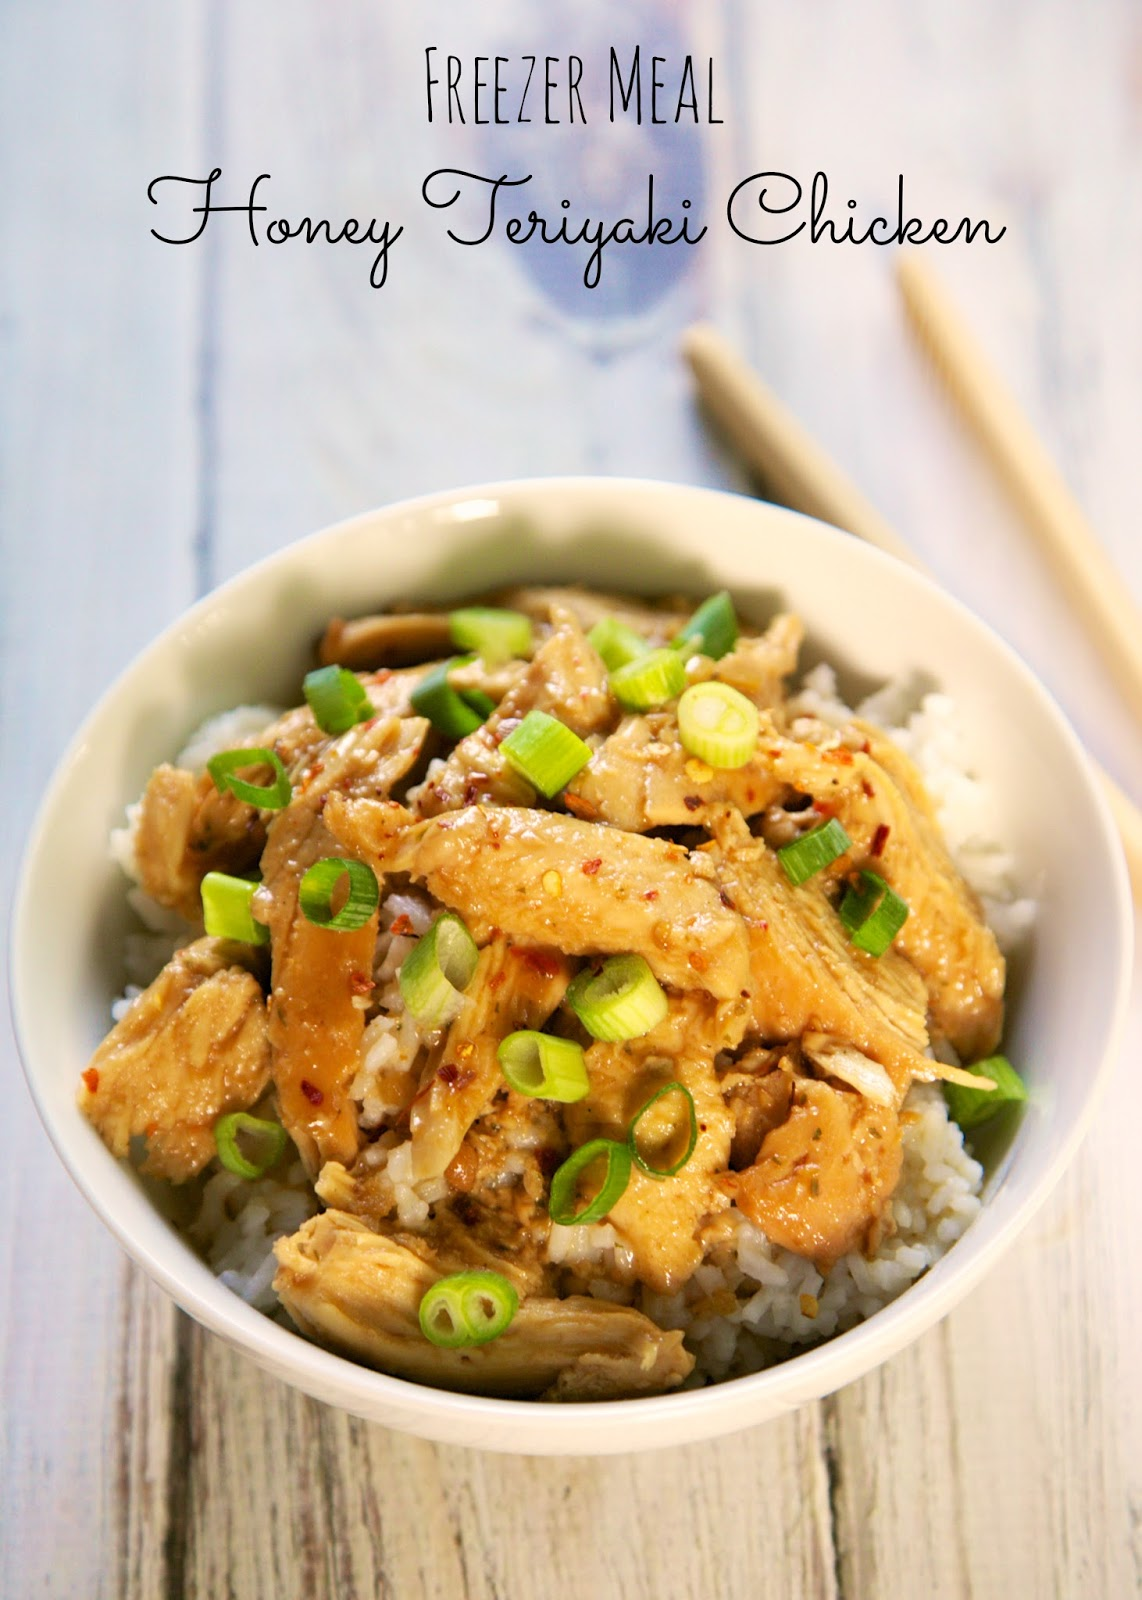 Freezer Meal} Honey Teriyaki Chicken - chicken, honey teriyaki sauce ...